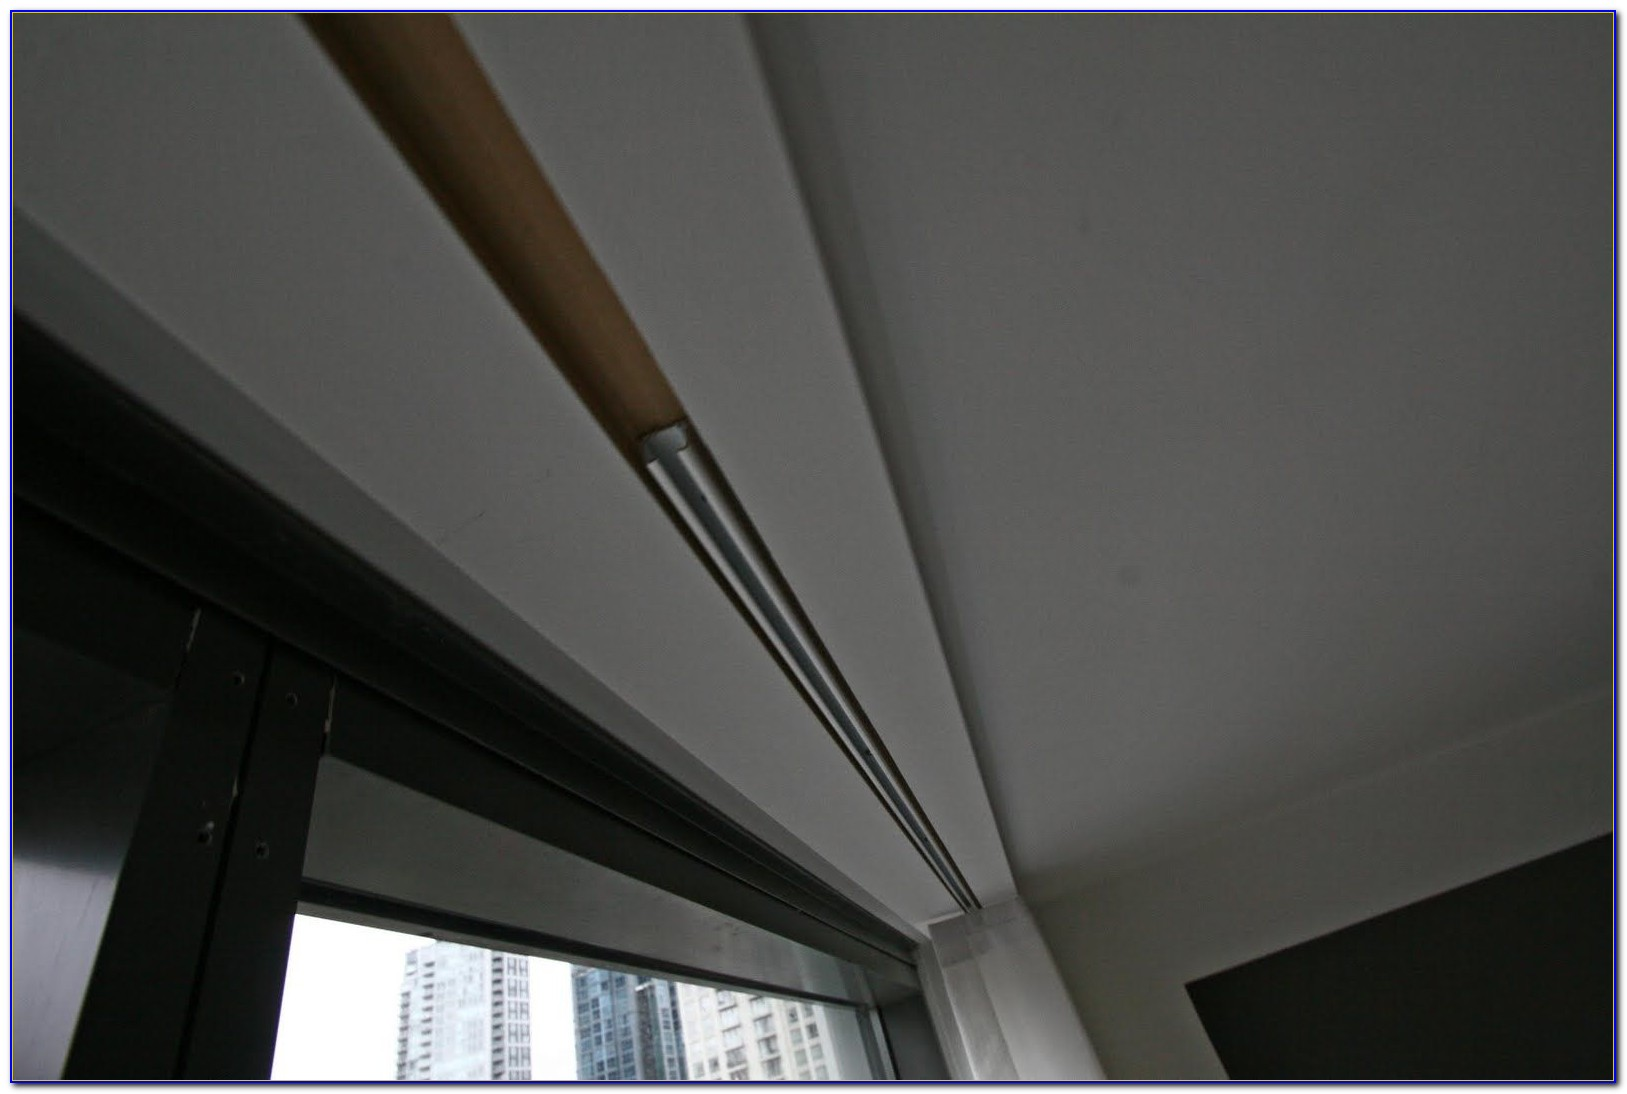 Curtain Tracks For Ceiling Fitting